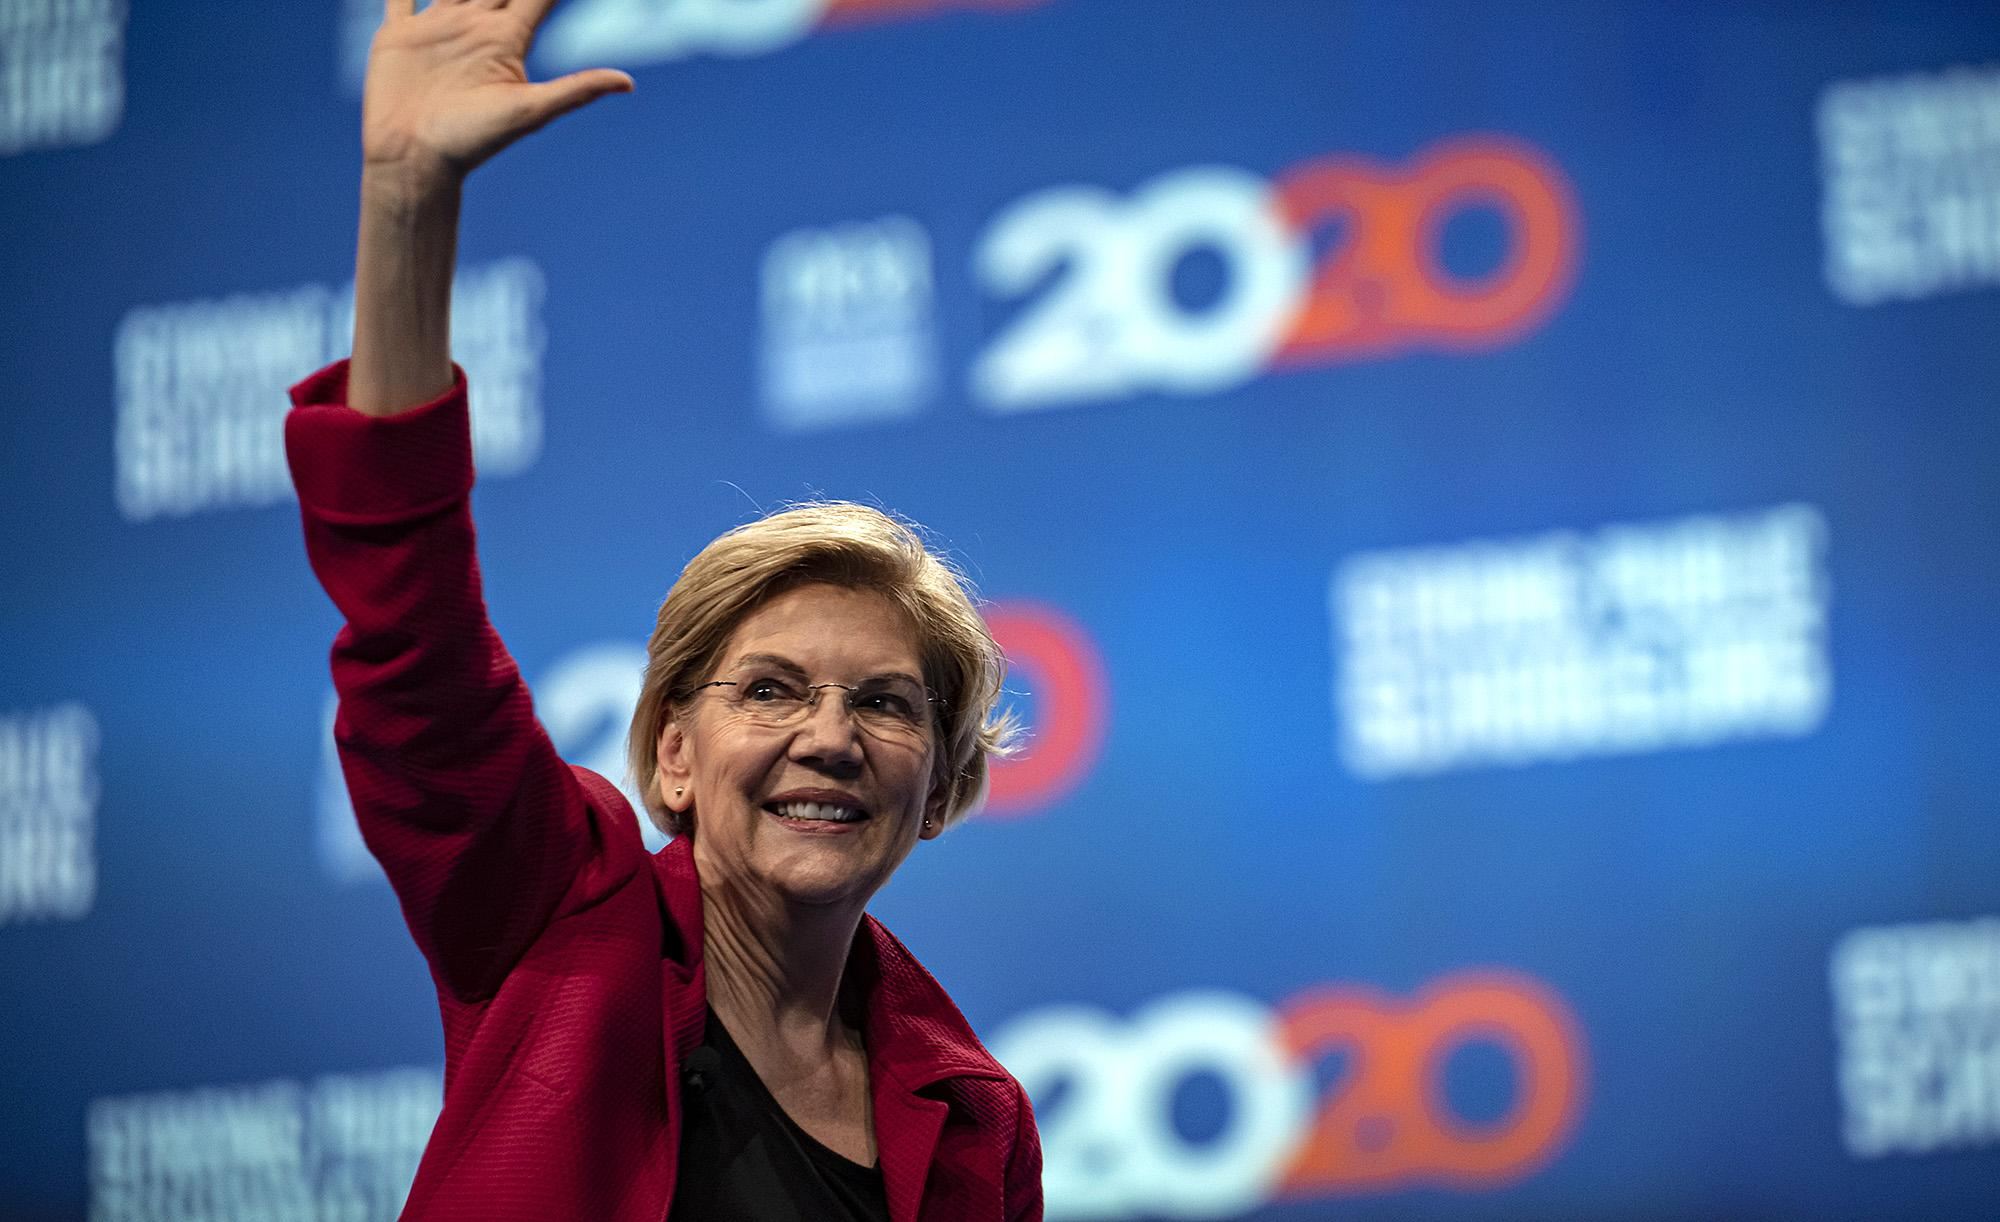 Democrats Are Spotlighting Big >> Elizabeth Warren S Economic Crash Call Spotlights Democrats Line